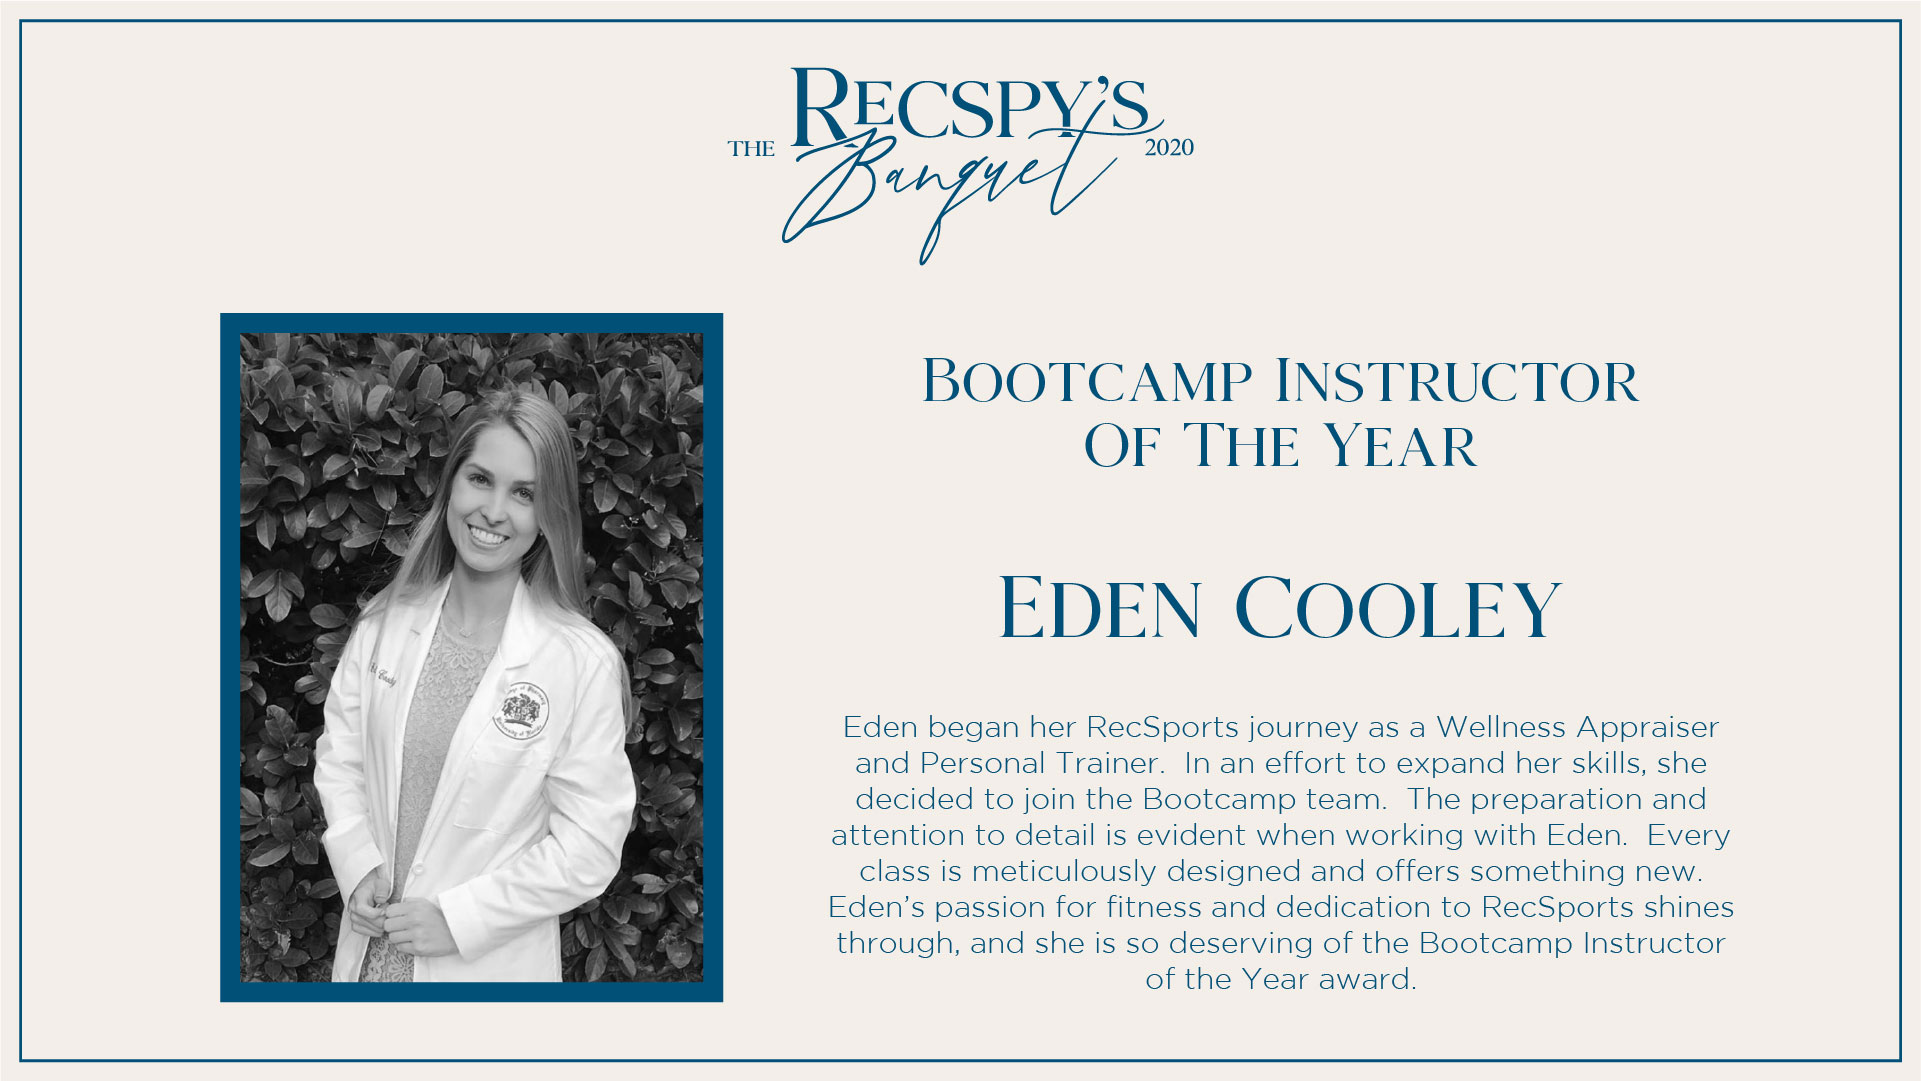 Eden Cooley: Bootcamp Instructor of the Year